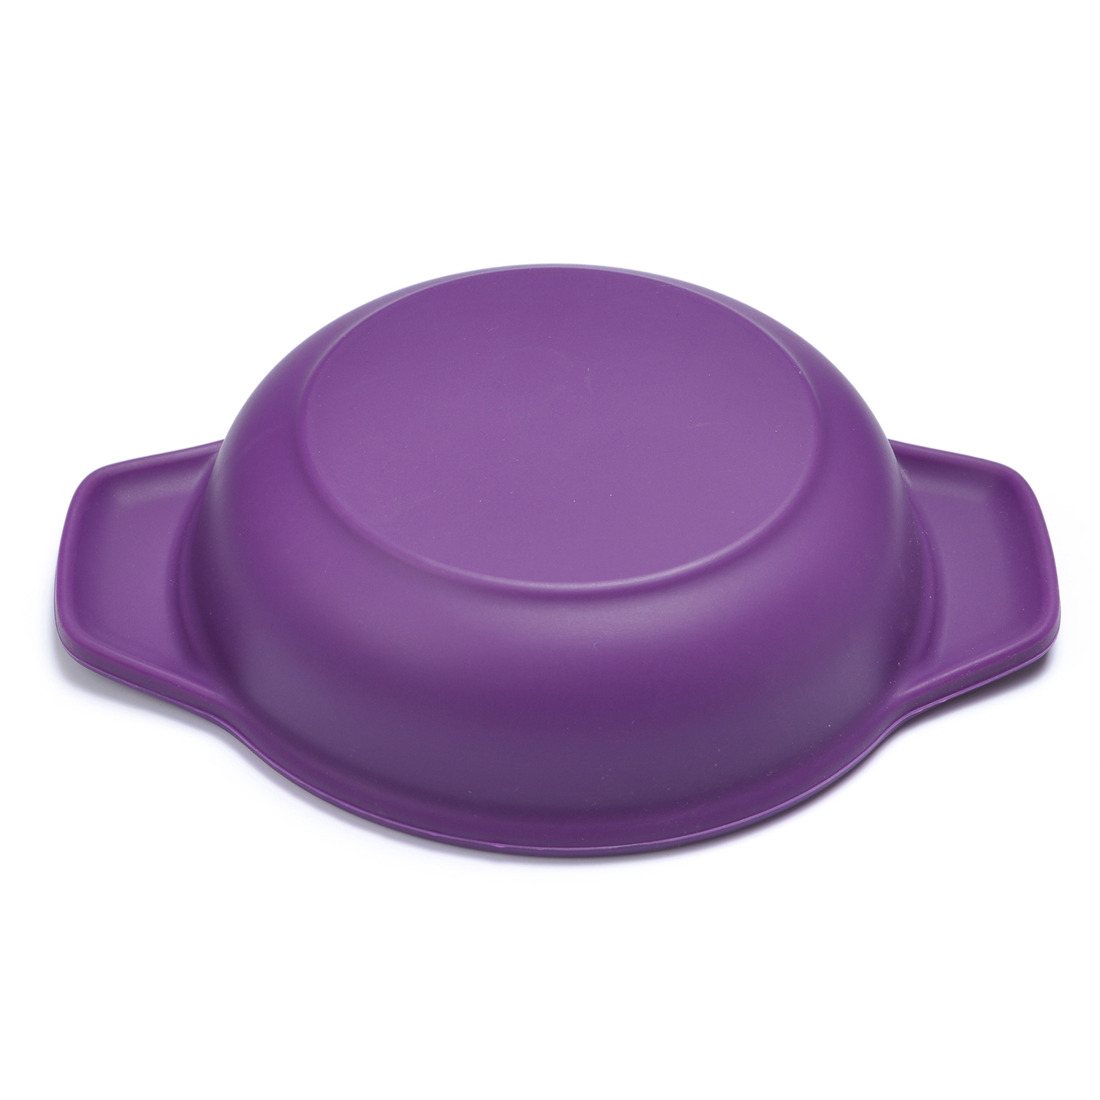 Invotive High-quality silicone bowl factory for global market-4